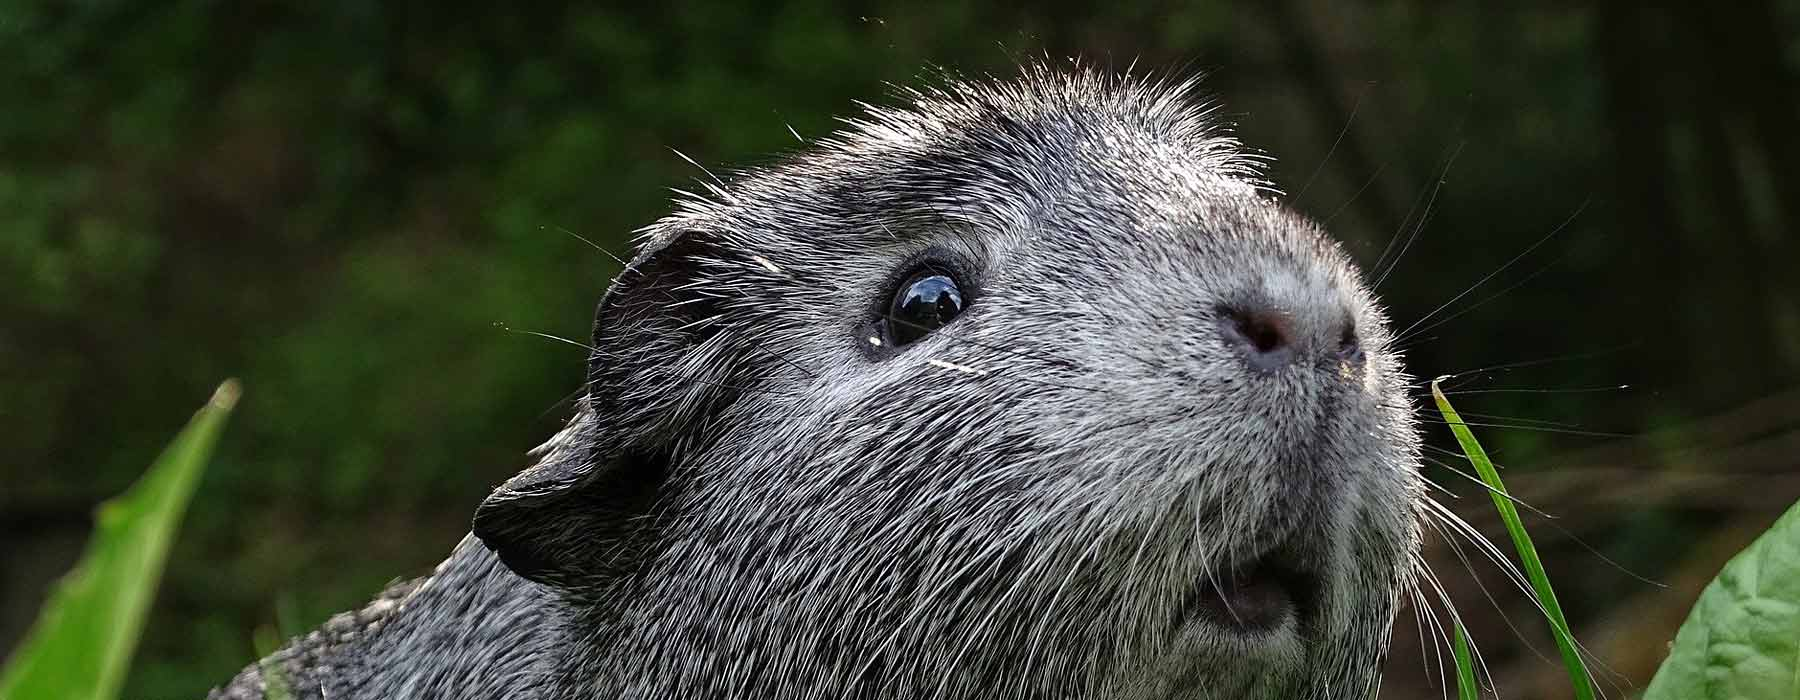 cute grey guinea pig in the outdoors